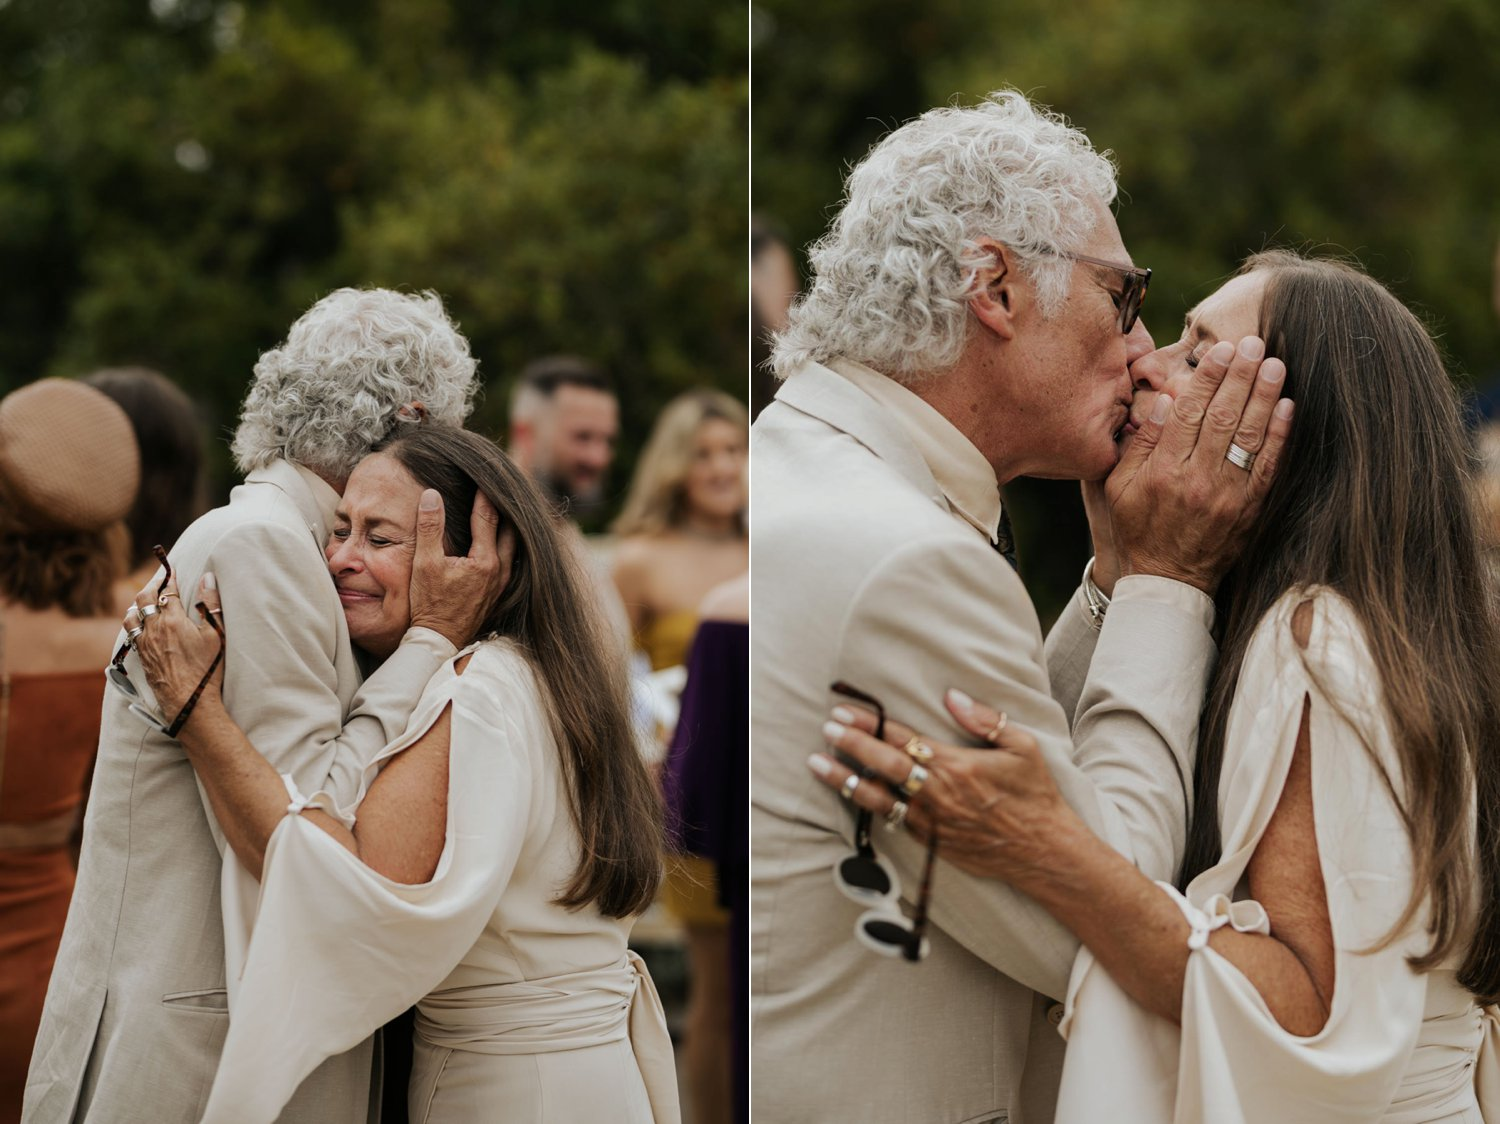 Emotional and moving wedding moments greeting guests and parents after ceremony